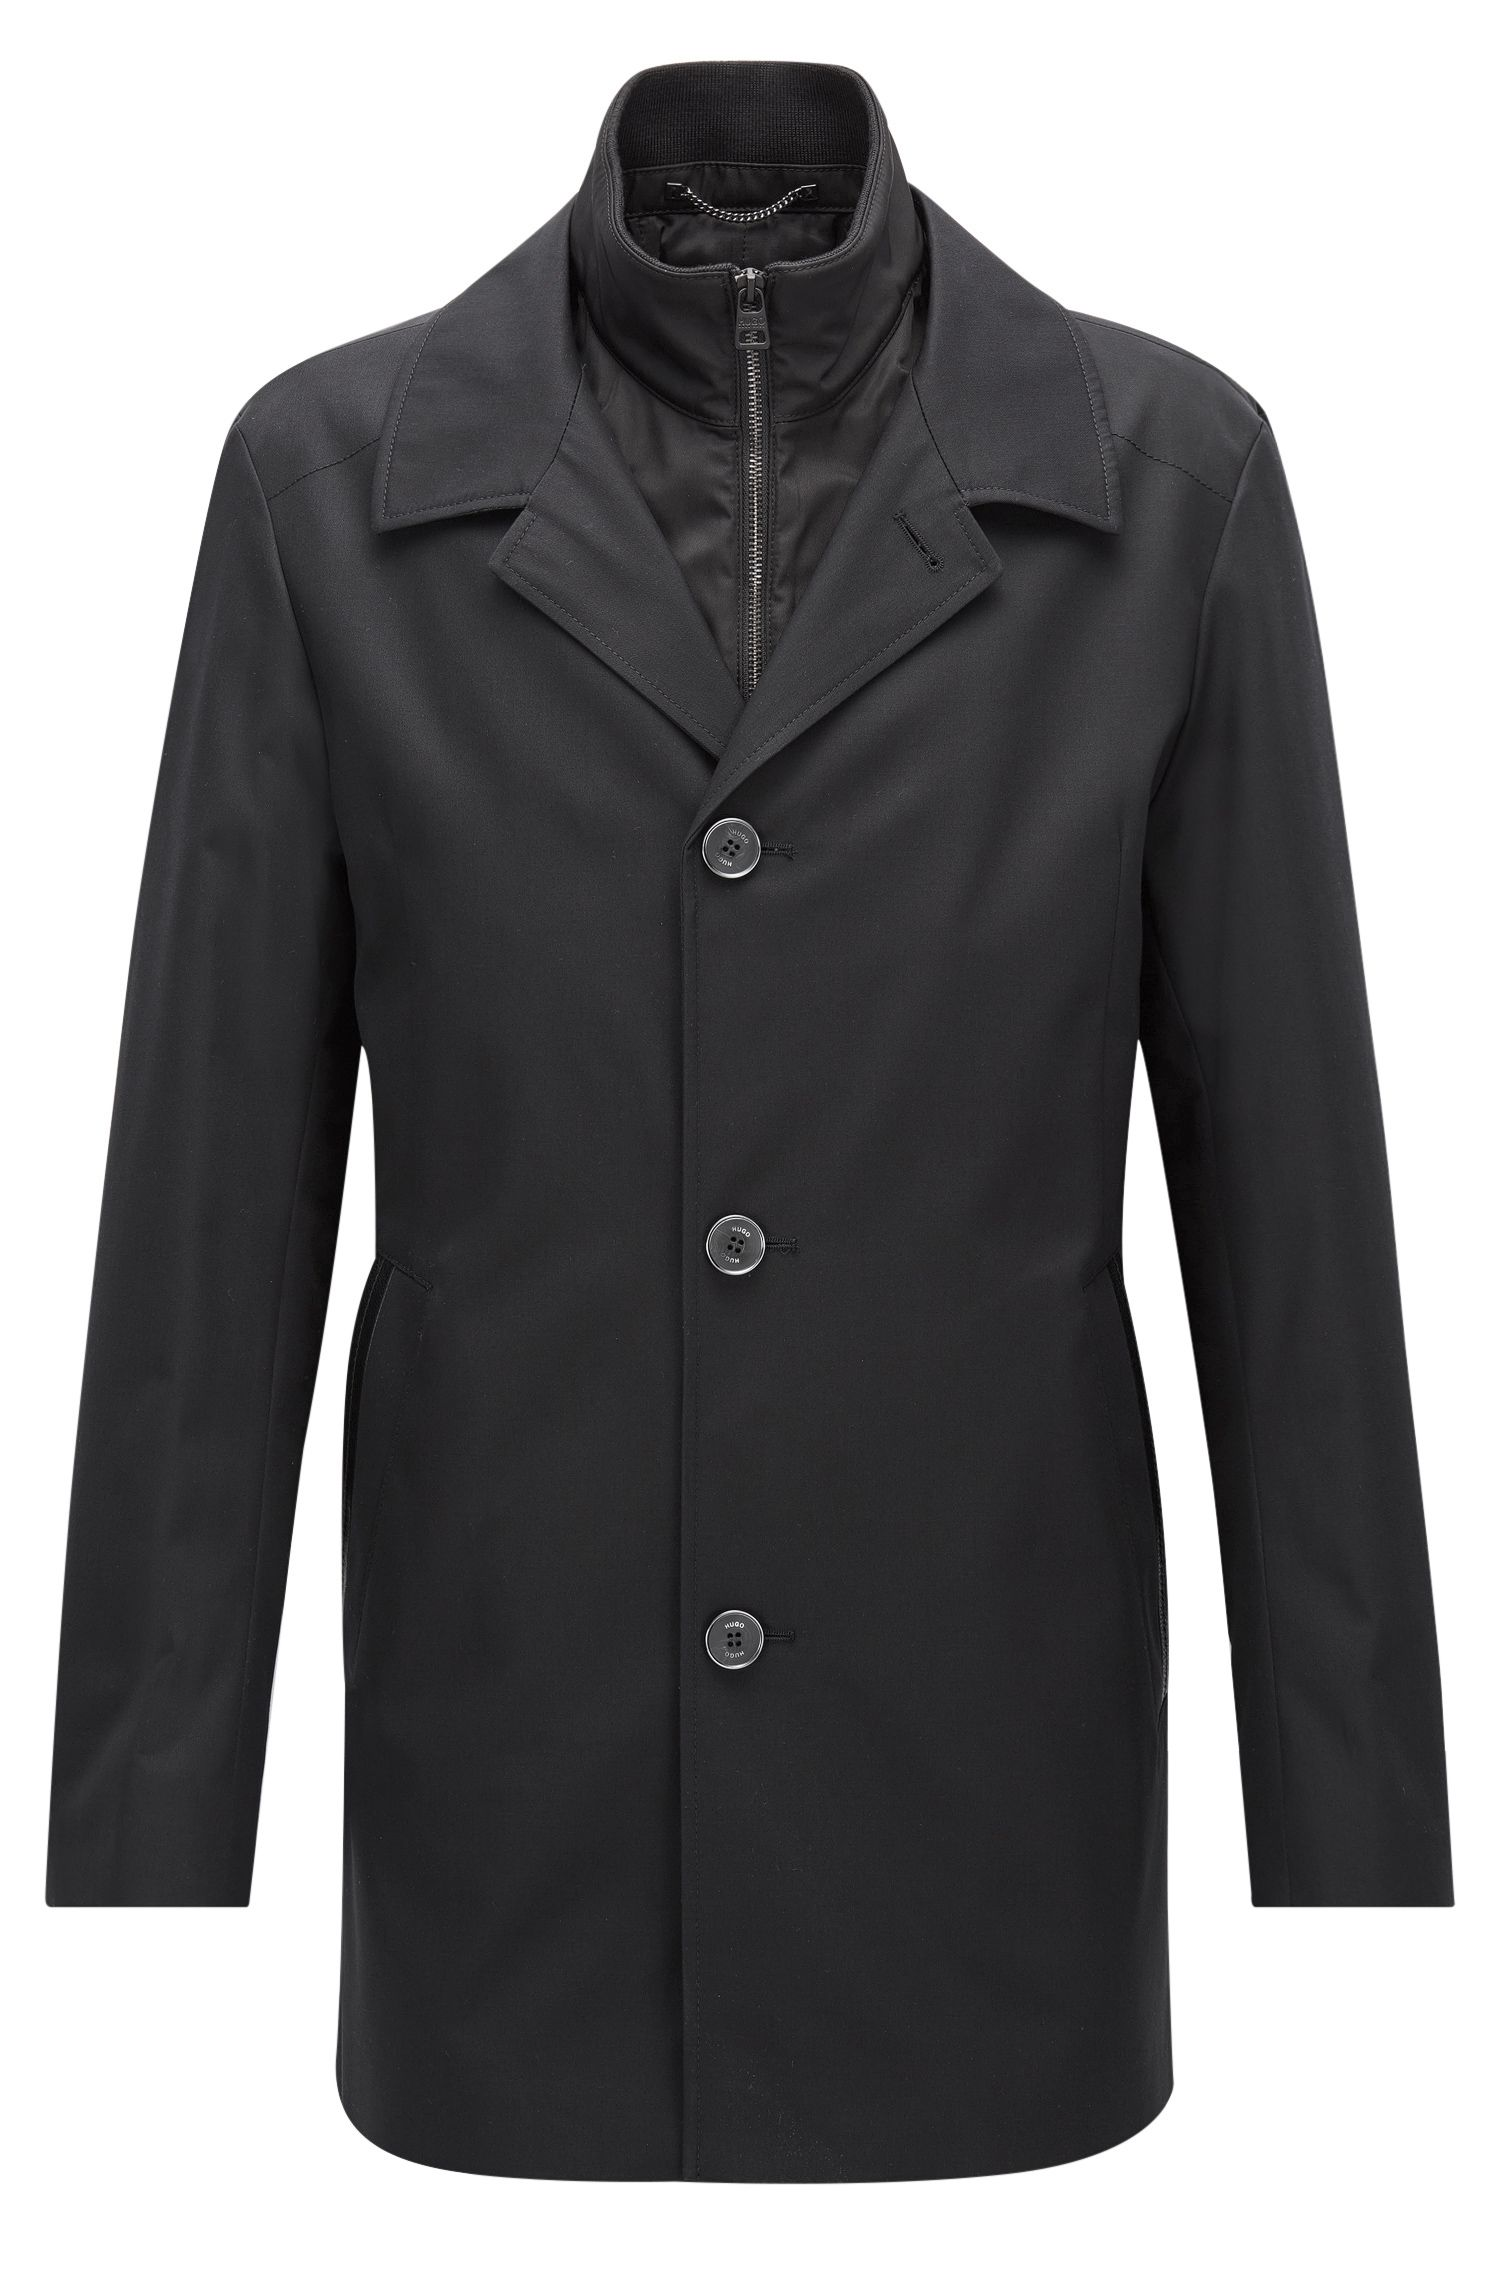 Regular-fit jacket in a water-repellent fabric